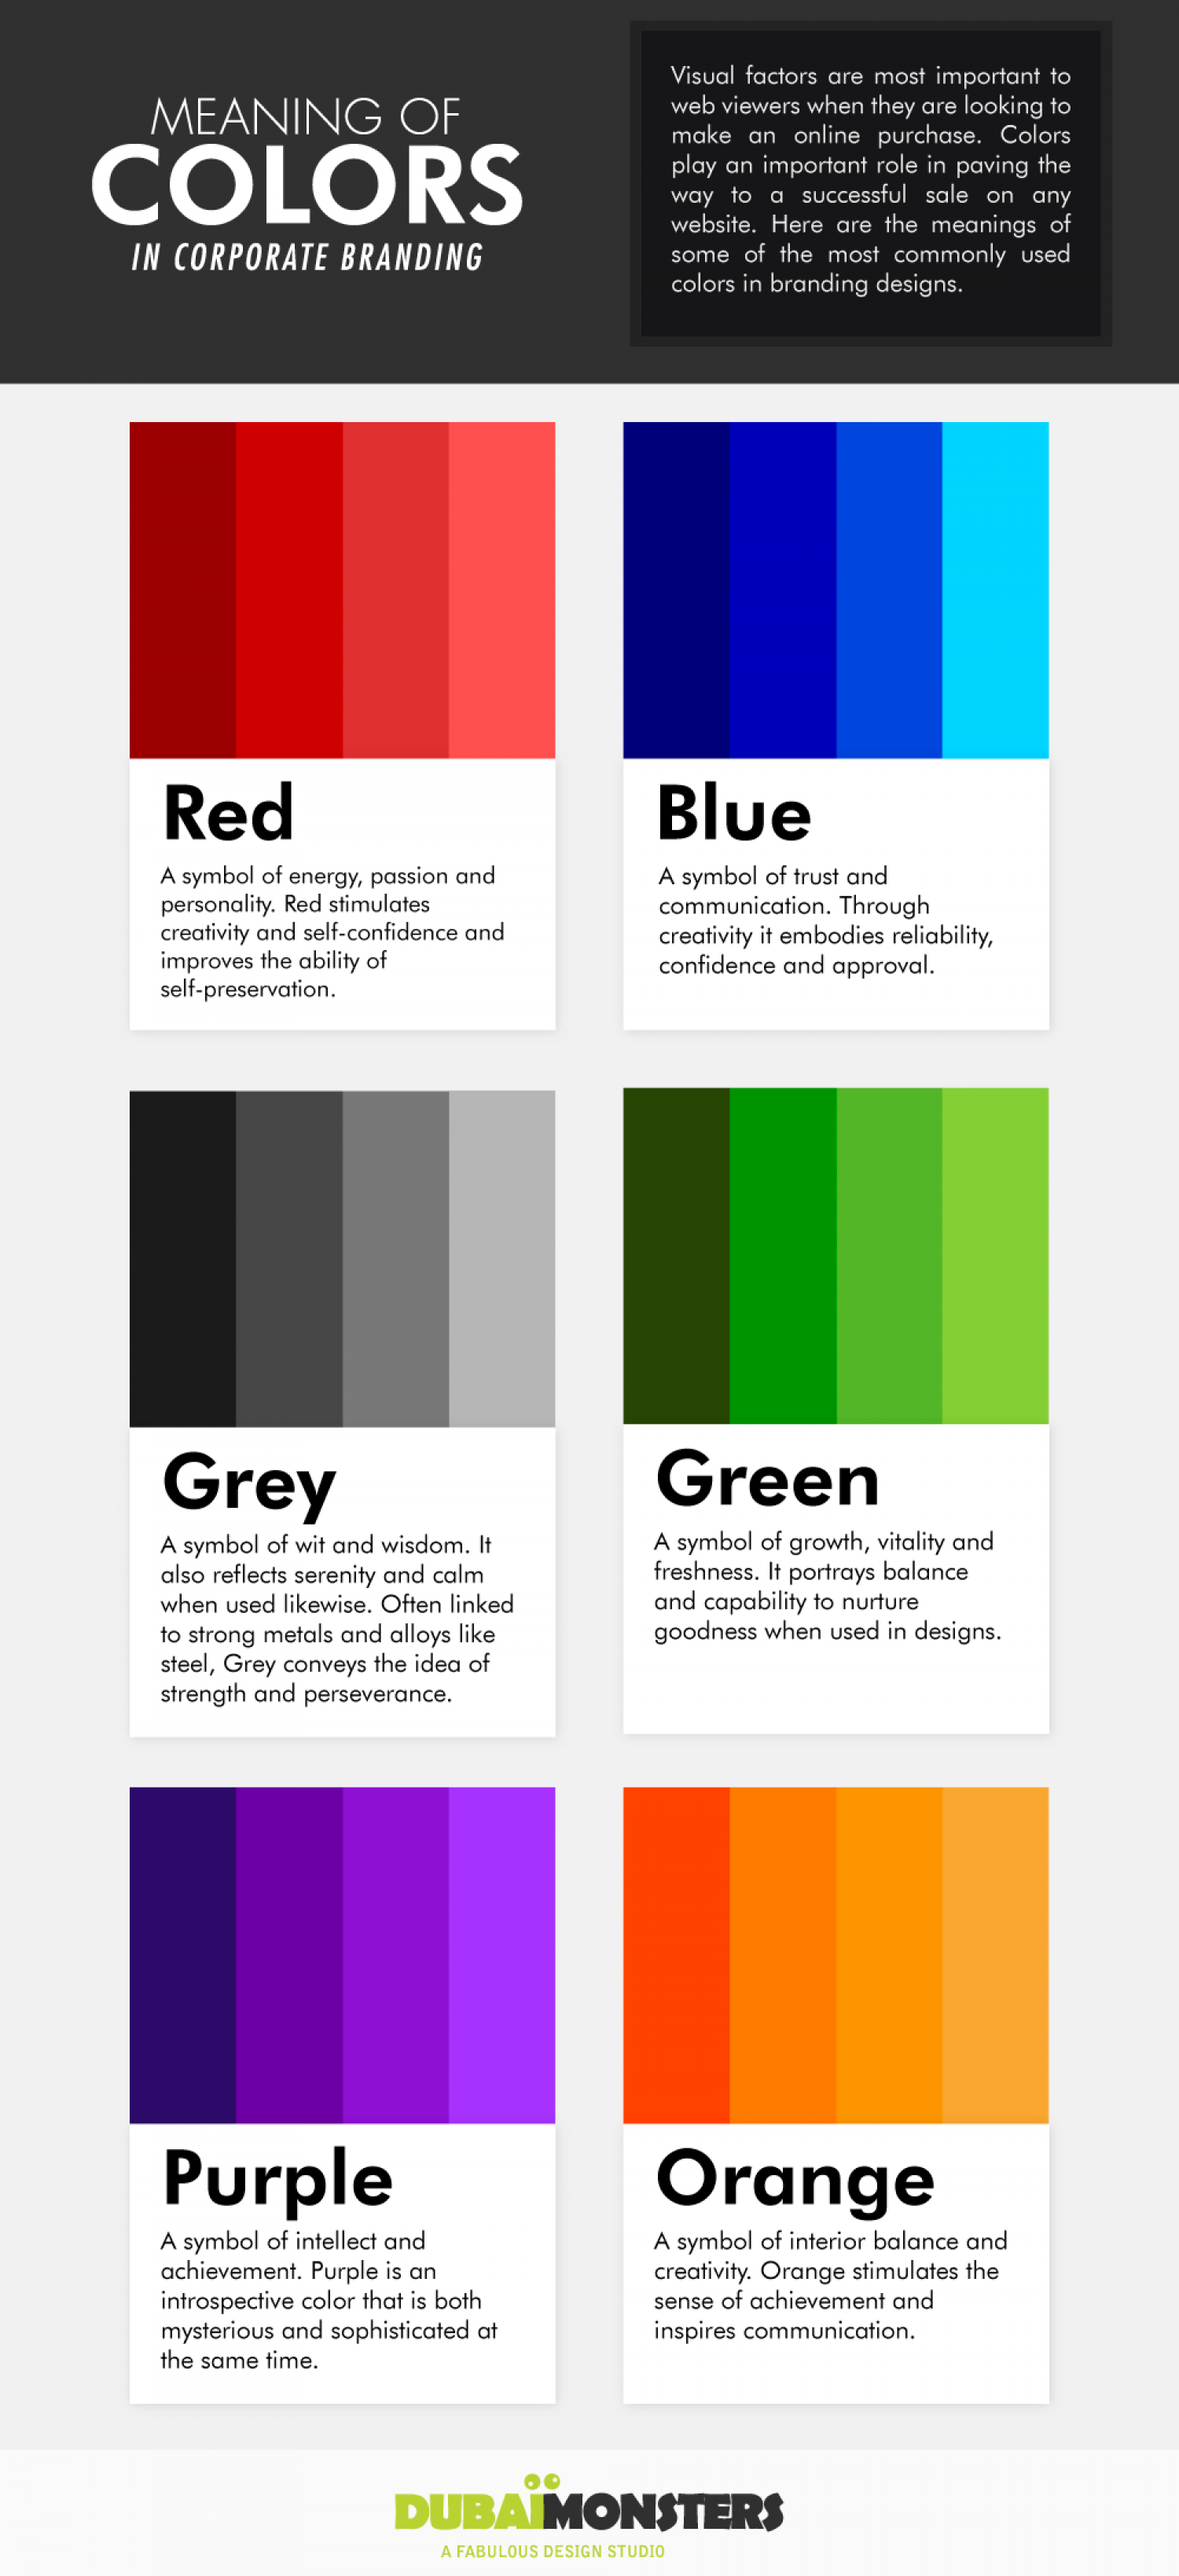 Meaning of Colors in Corporate Branding Infographic